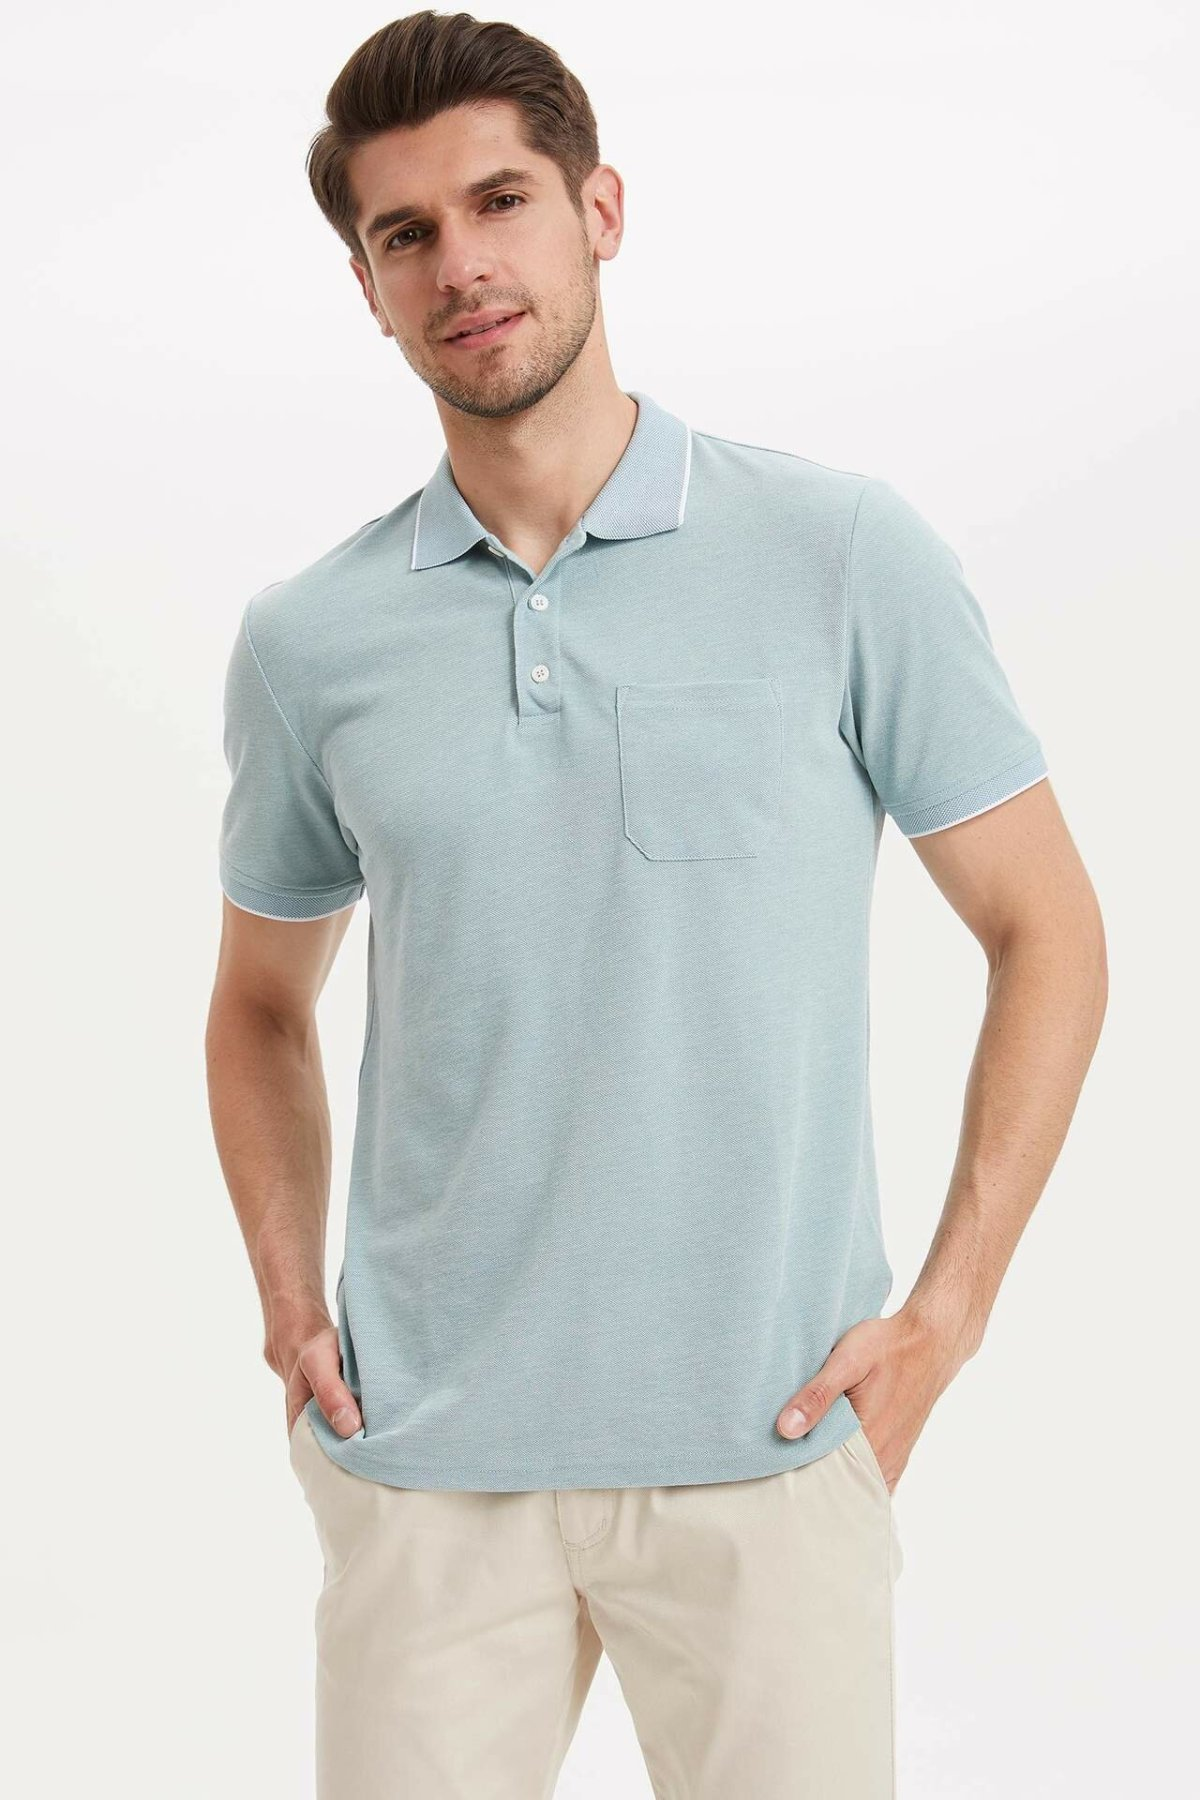 DeFacto Fashion Summer Simple Pure Color Leisure Mens Short-Sleeved Polos Shirts Male Casual Lapel Polos New-L4969AZ19SM